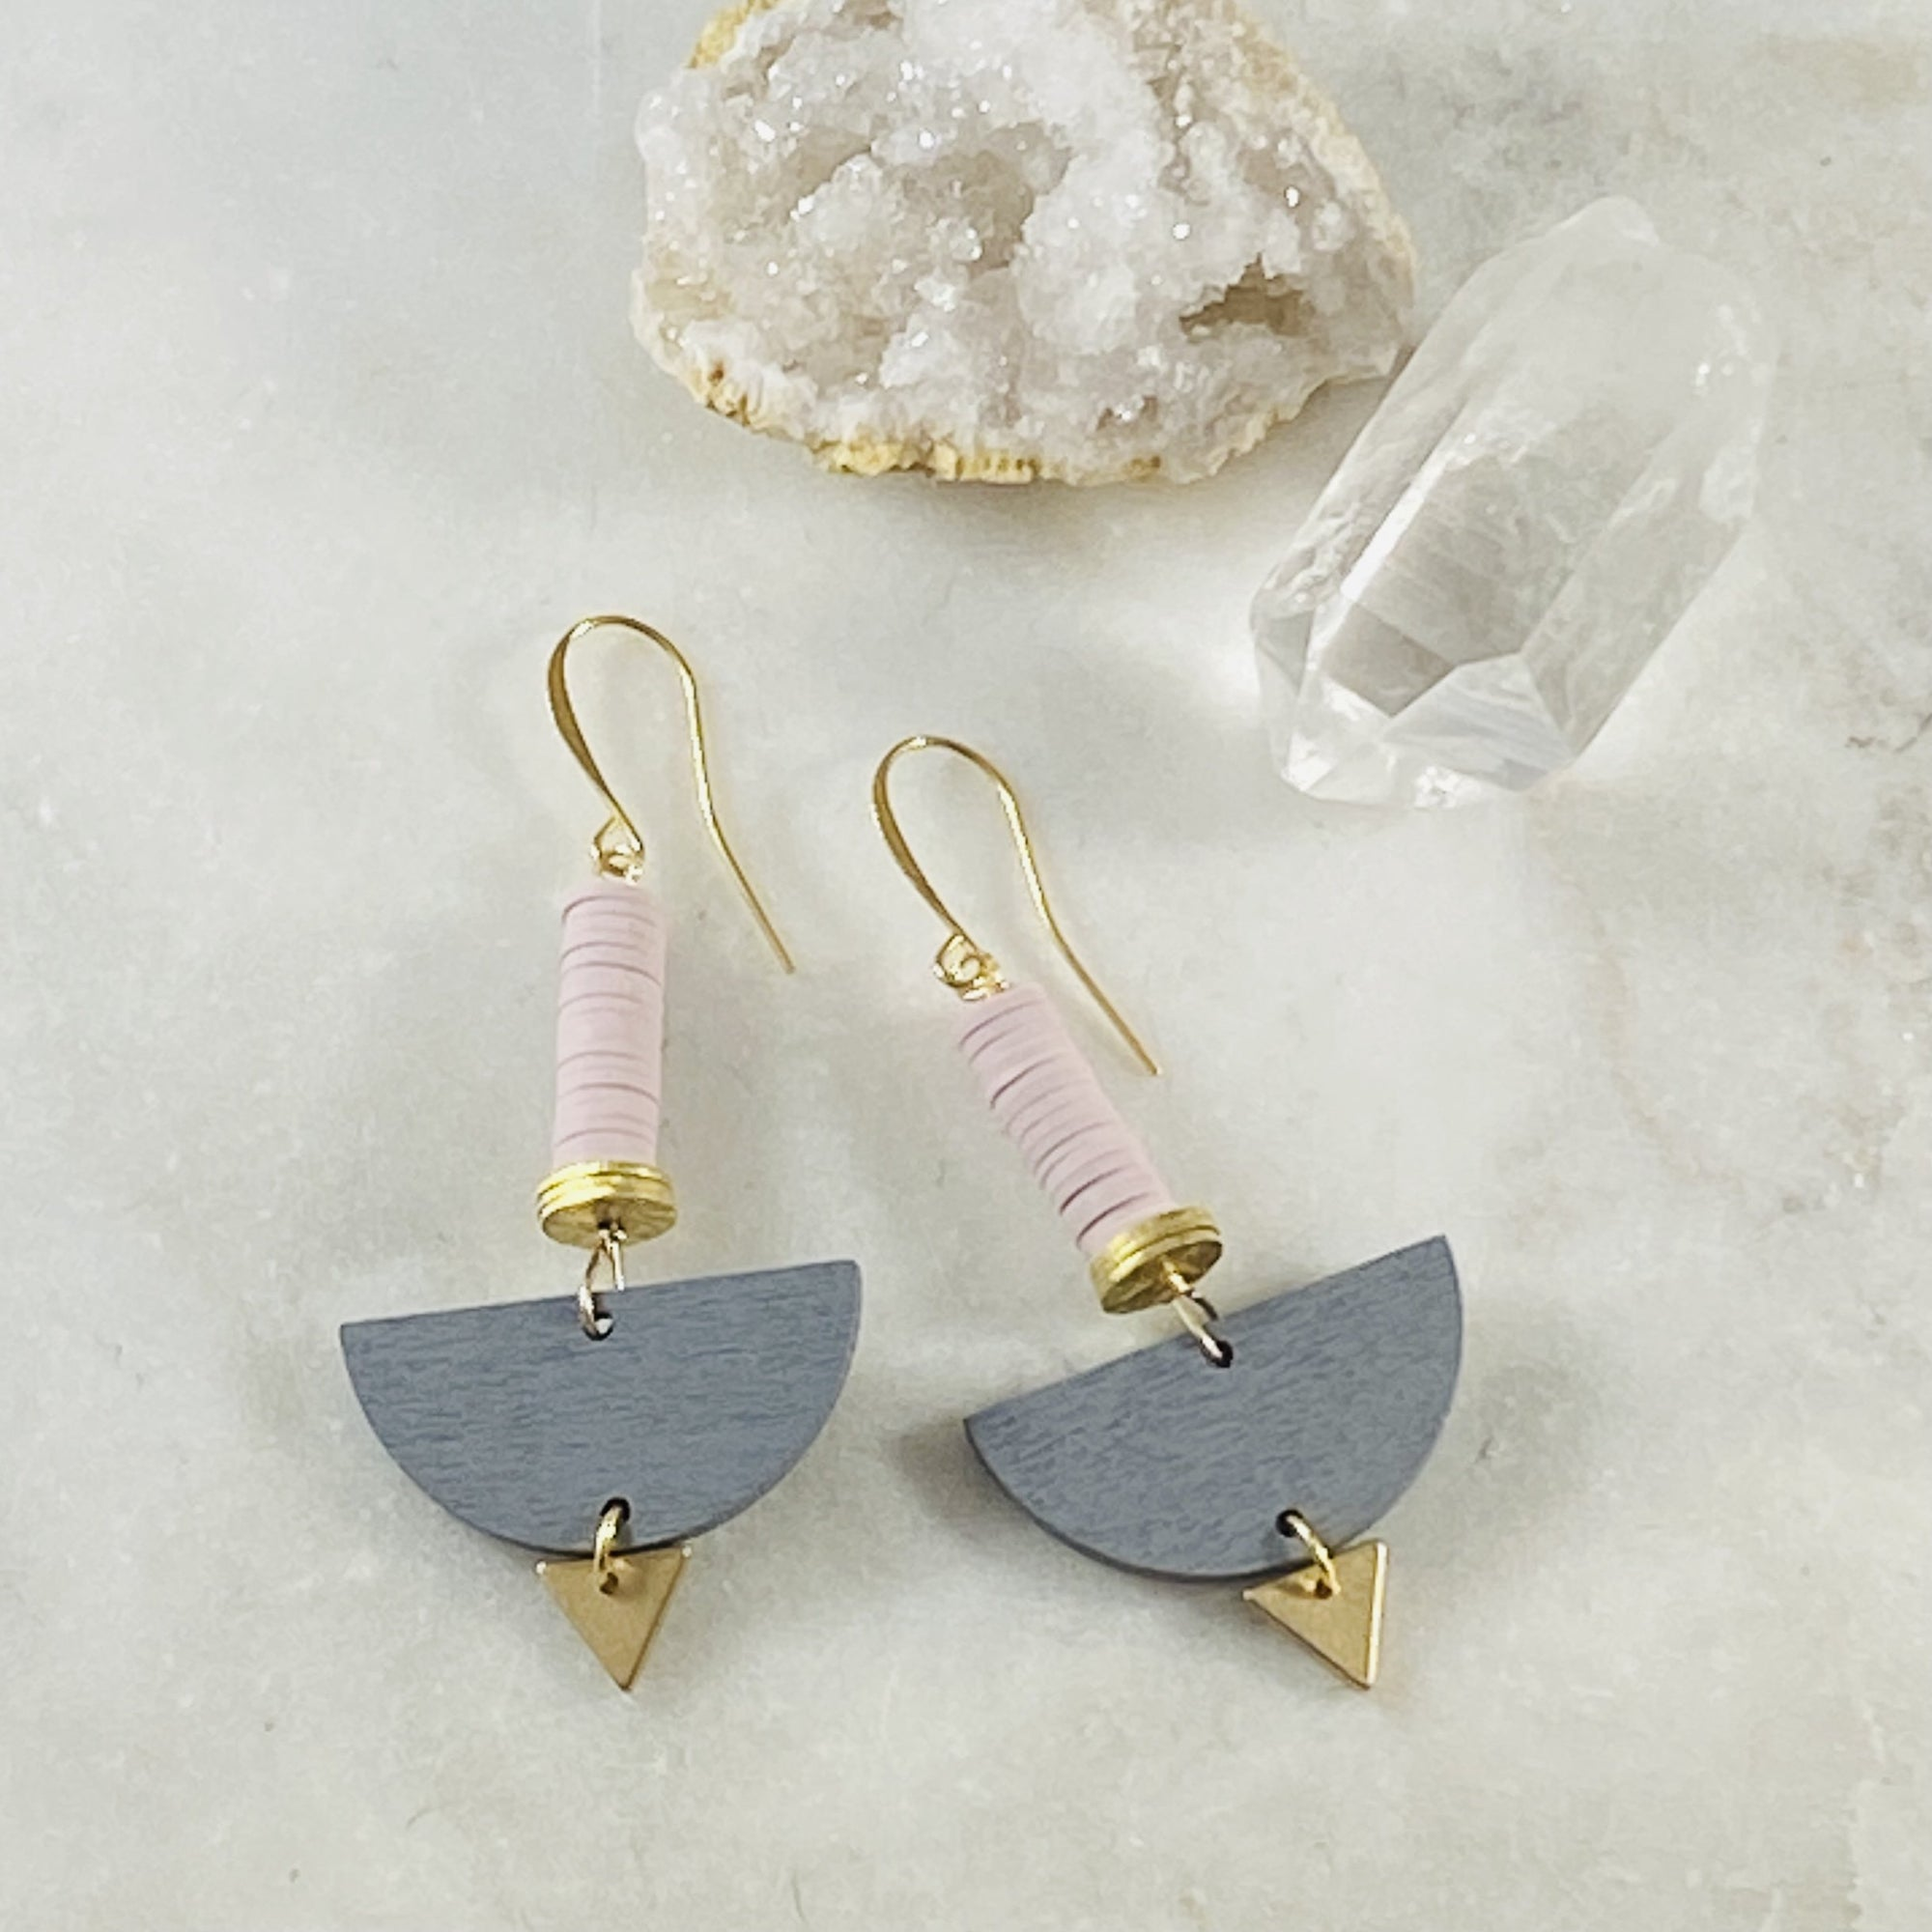 Victoria earrings in lavender, handmade by Sarah Belle